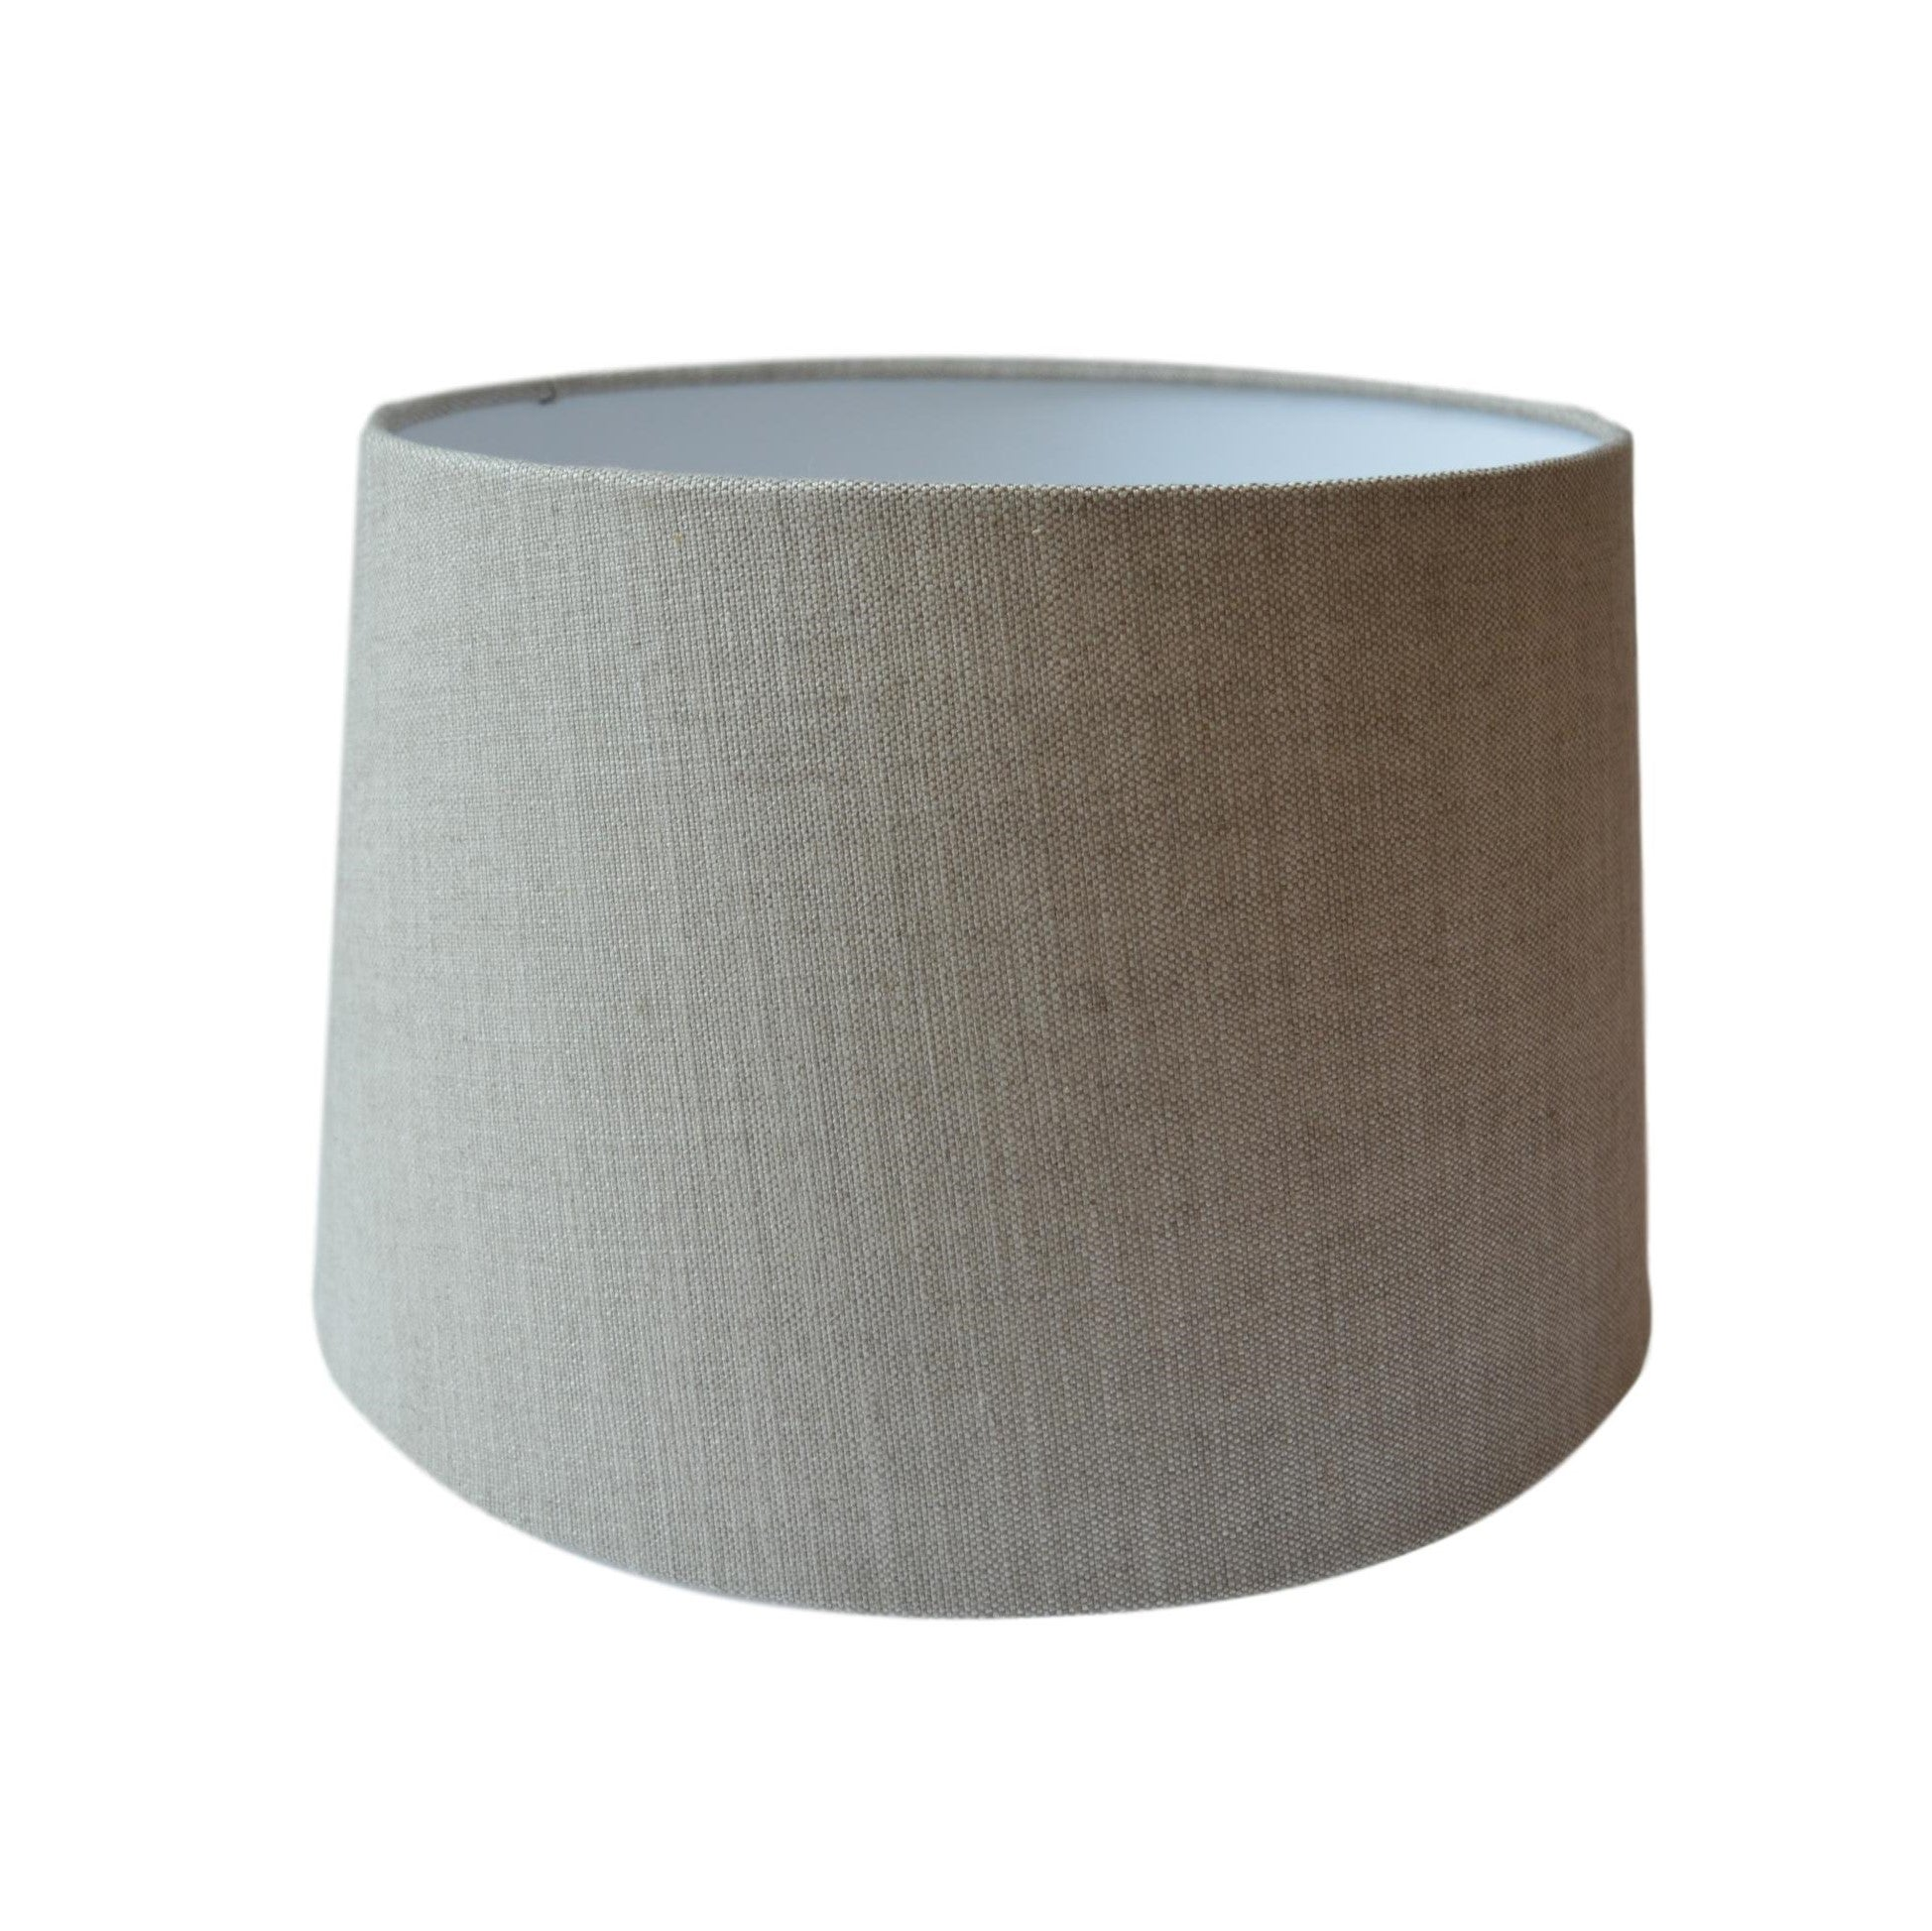 Munro and Kerr customers own material grey linen tapered drum lampshade